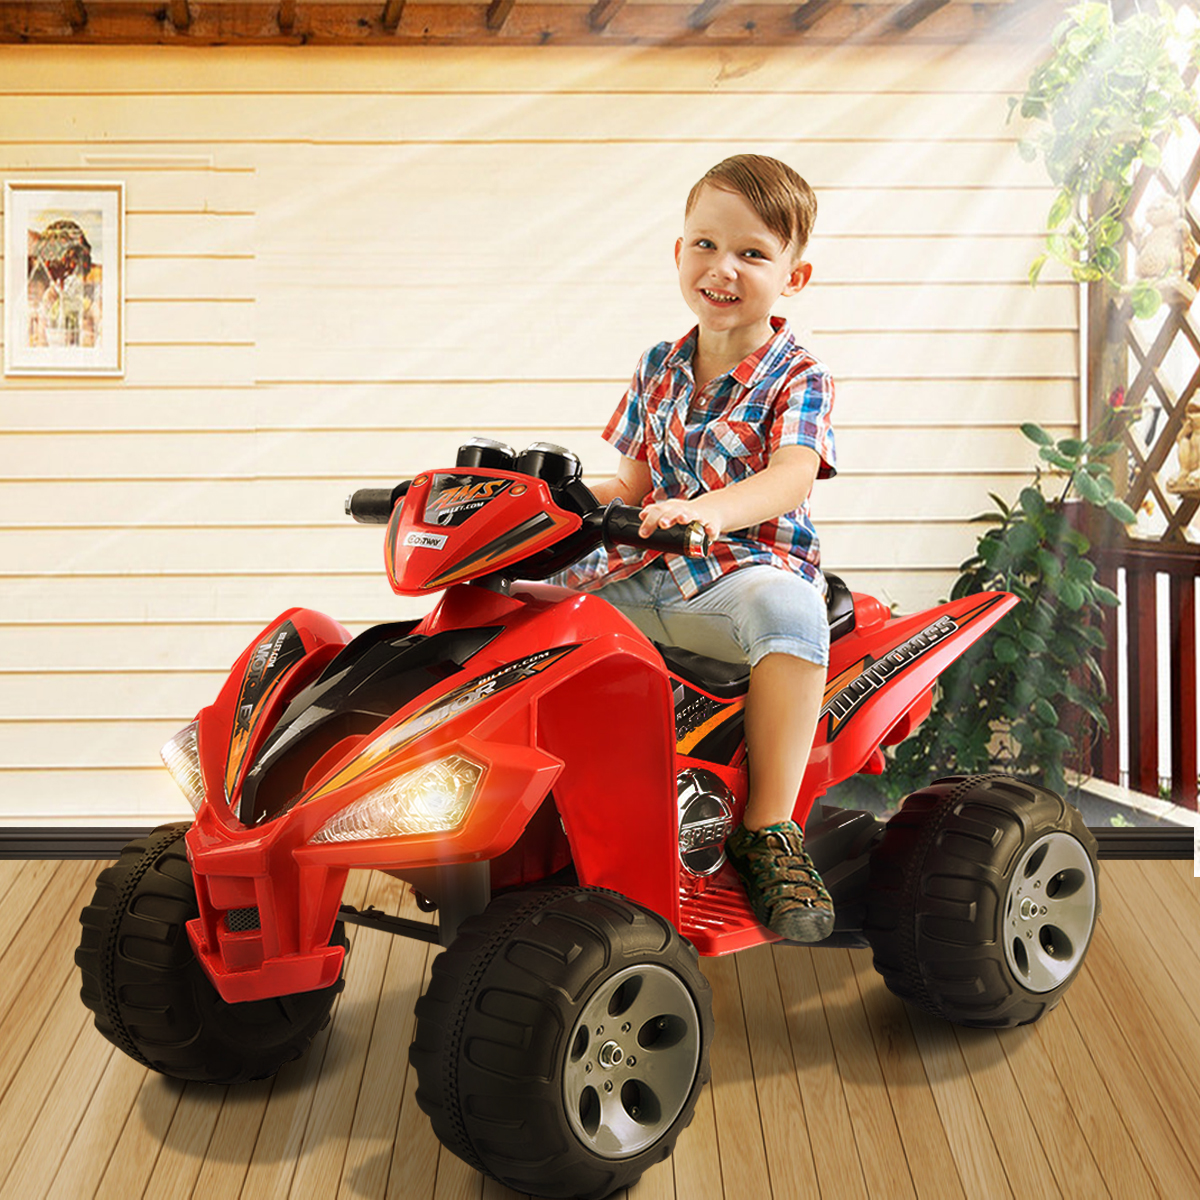 Kids Ride On Atv Quad 4 Wheeler Electric Toy Car 12v Battery Power 2 Color Kids Ride On Car Battery Powered Bicycle